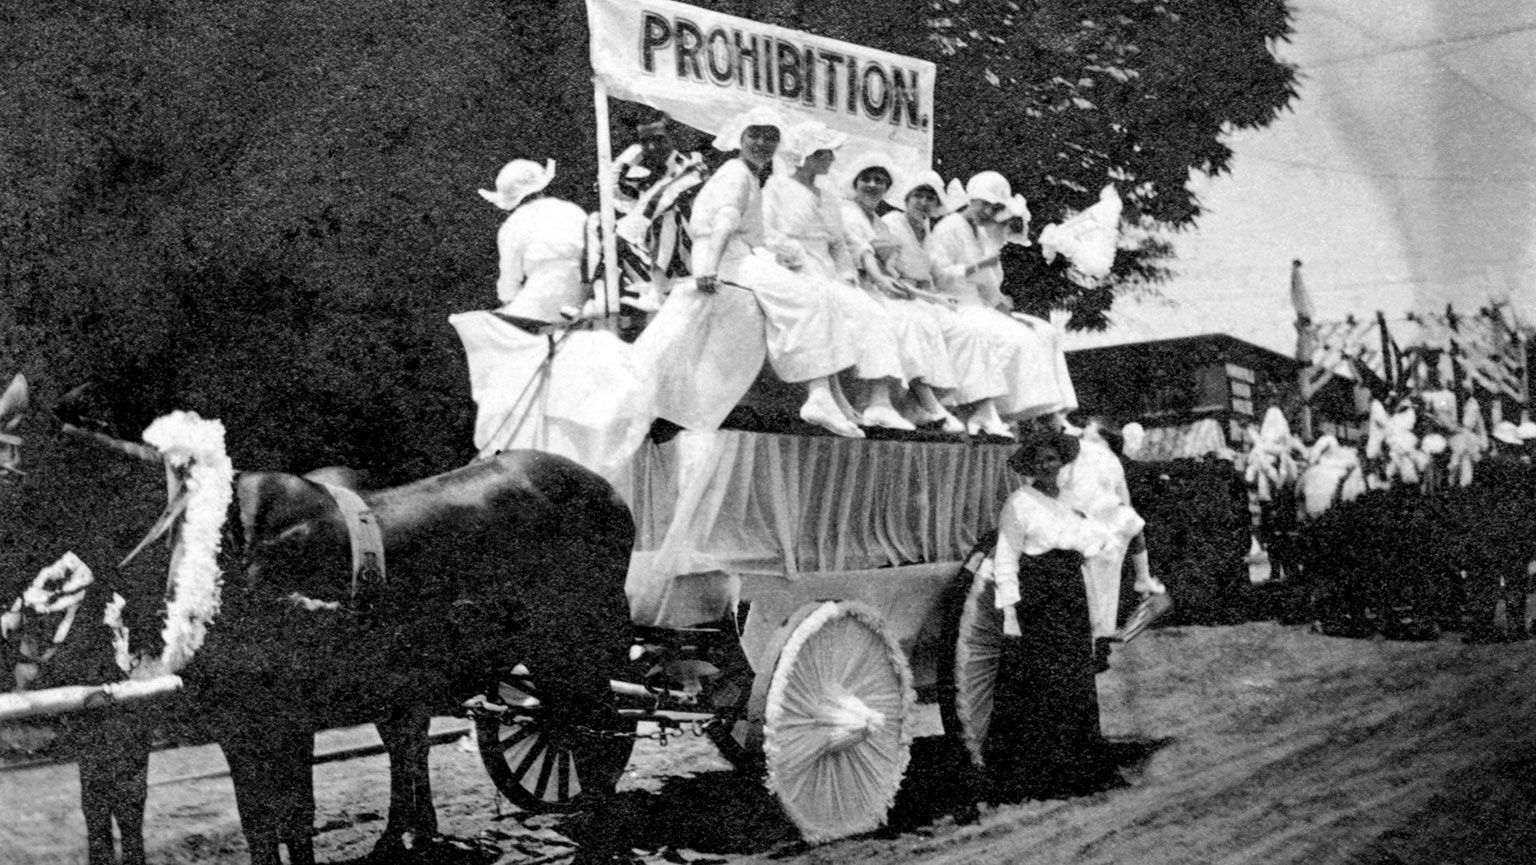 essay of prohibition and effect in the united states between 1920 and 1933